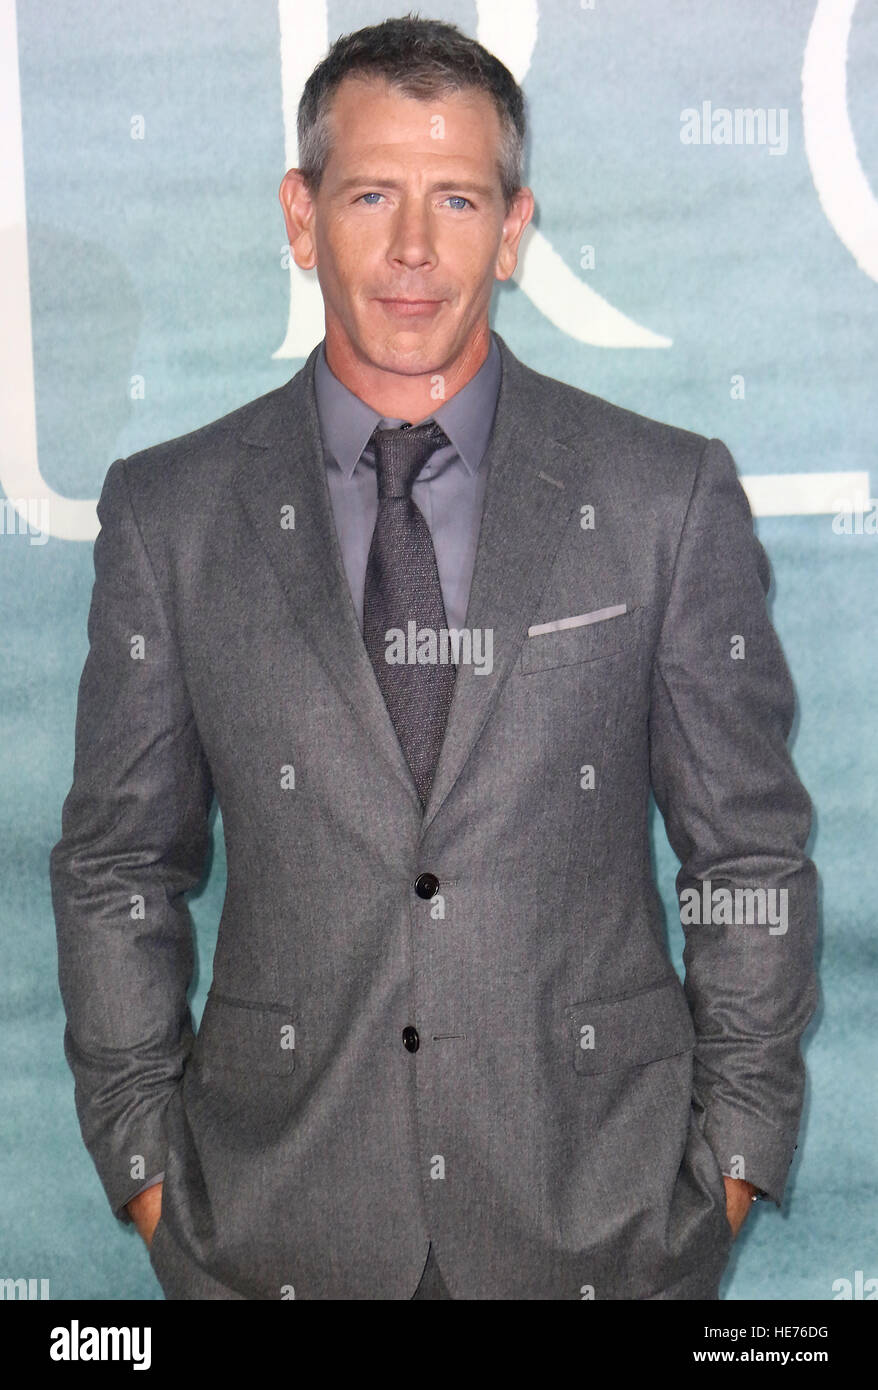 Dec 13, 2016  - Ben Mendelsohn attending 'Rogue One: A Star Wars Story' - Launch Event at Tate Modern in London, Stock Photo